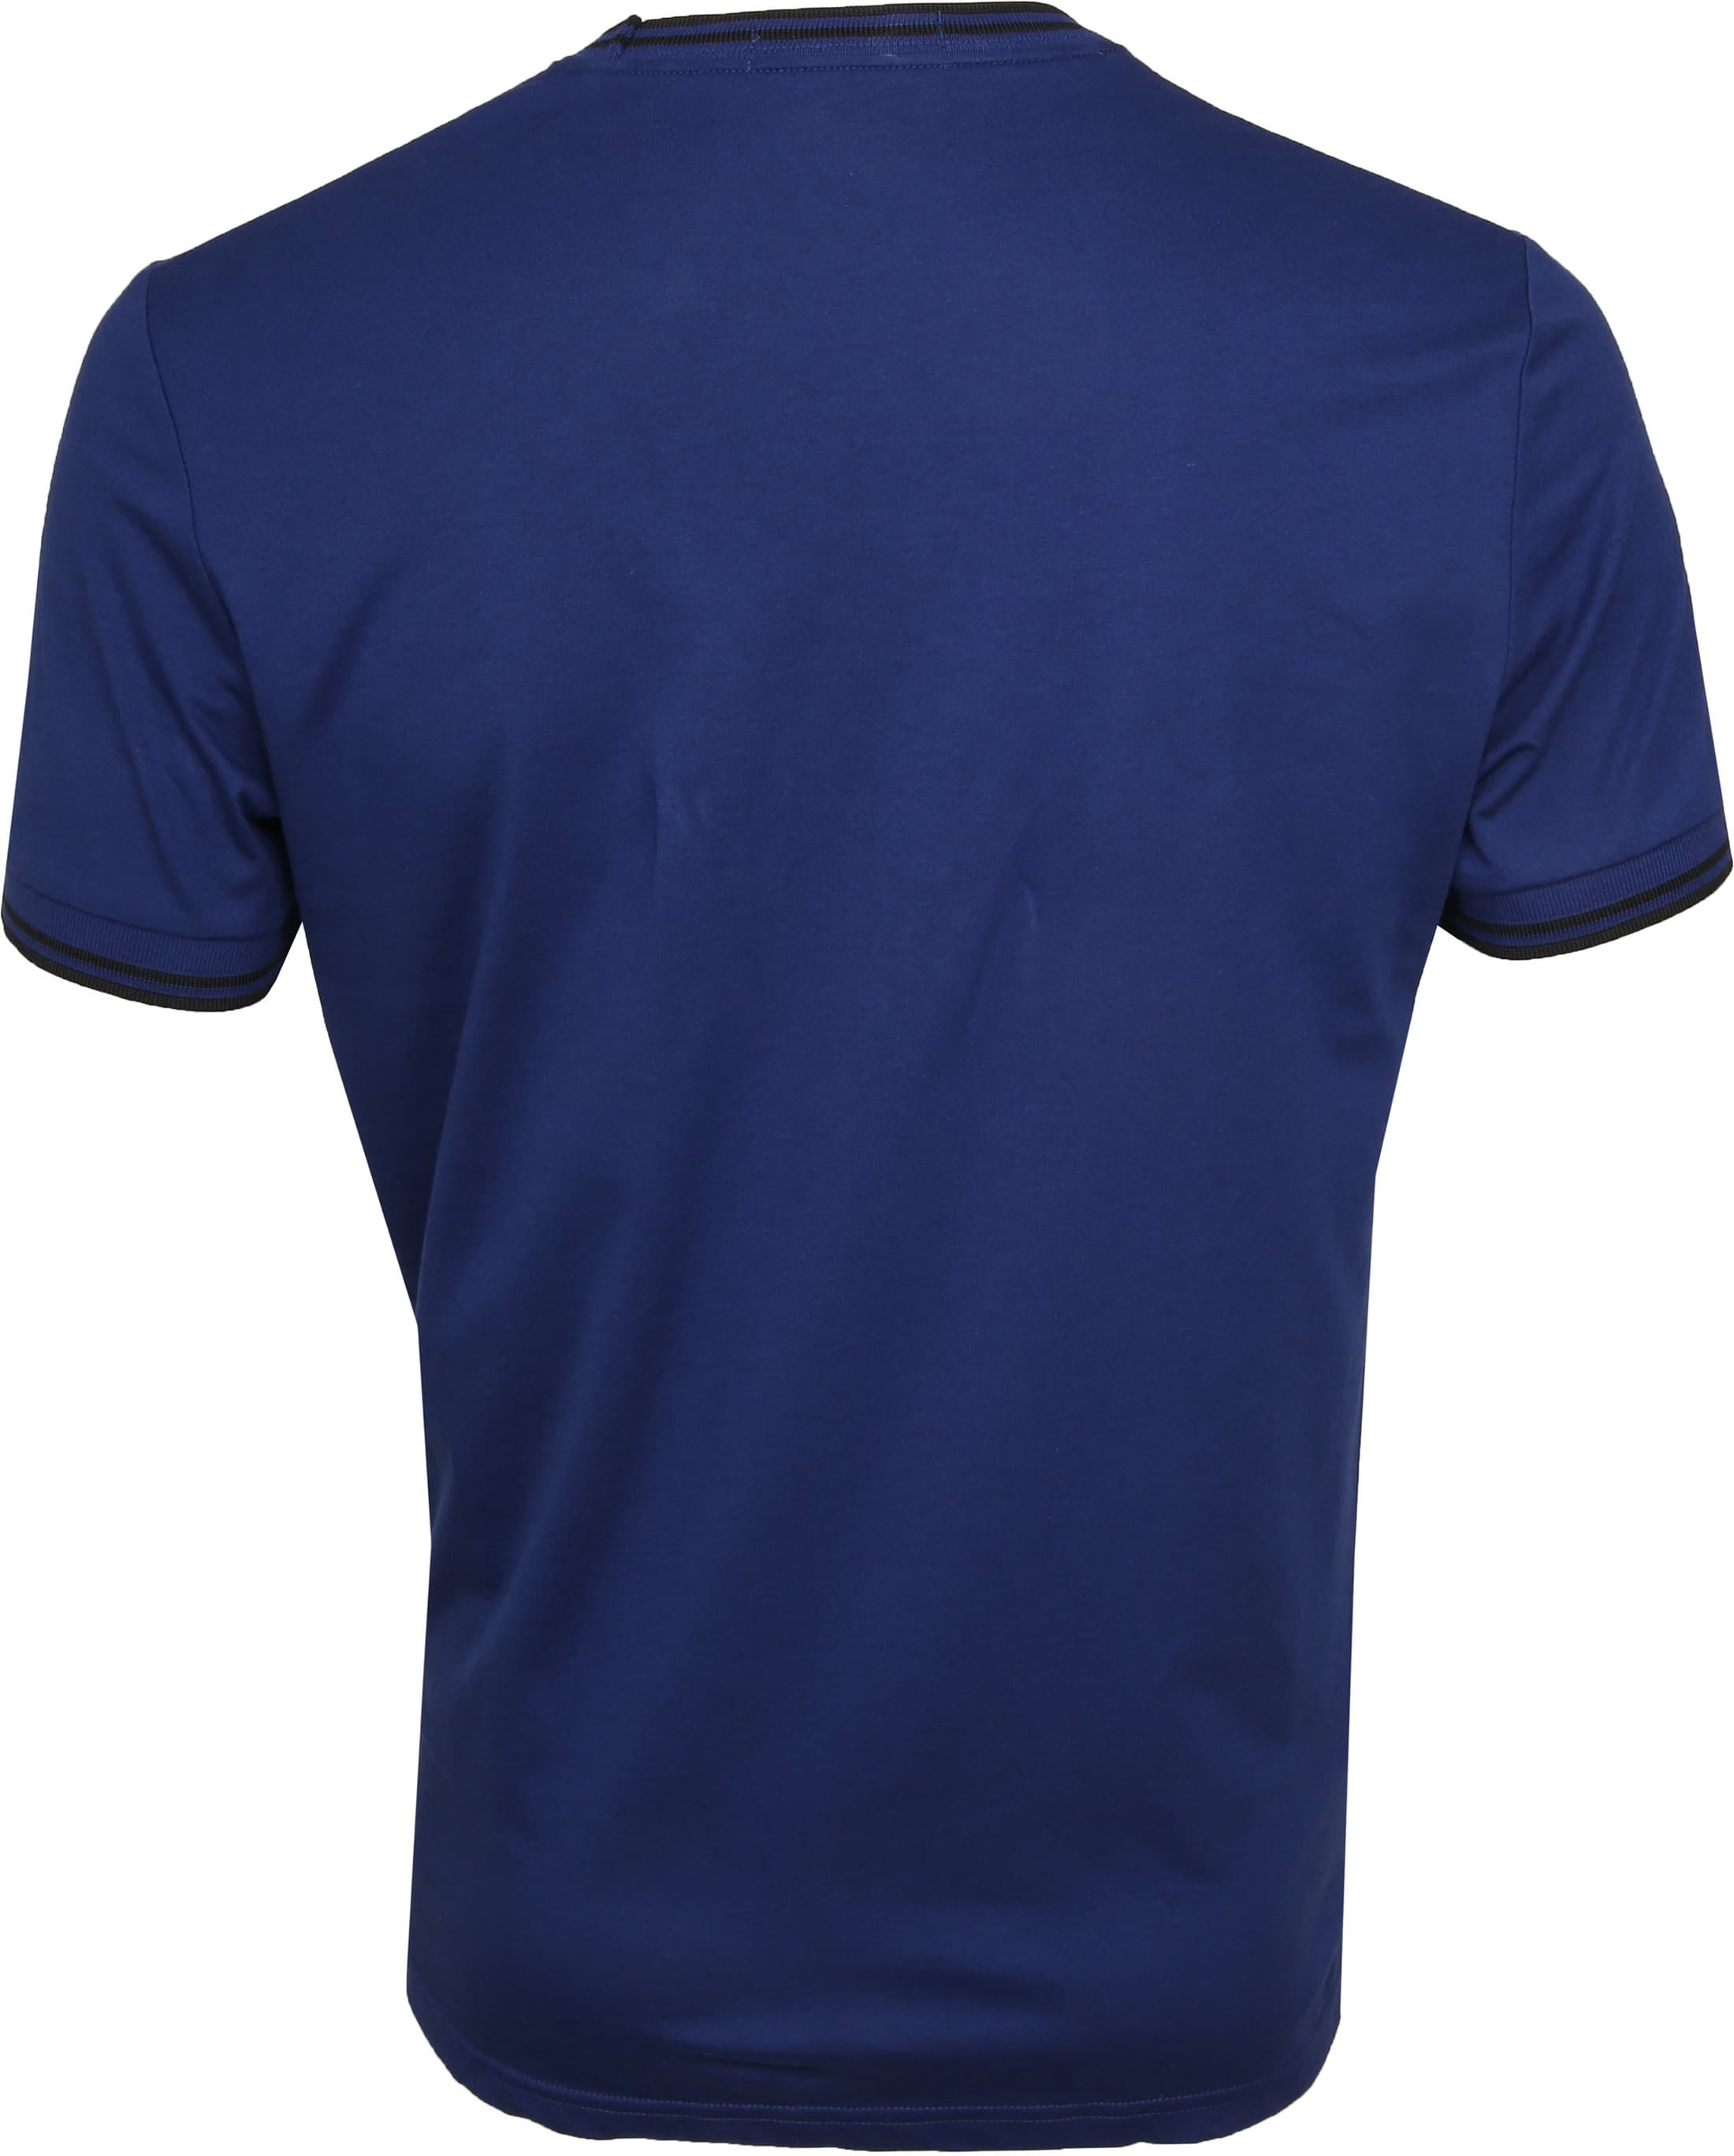 Fred Perry Twin Tipped T-shirt Blau foto 3